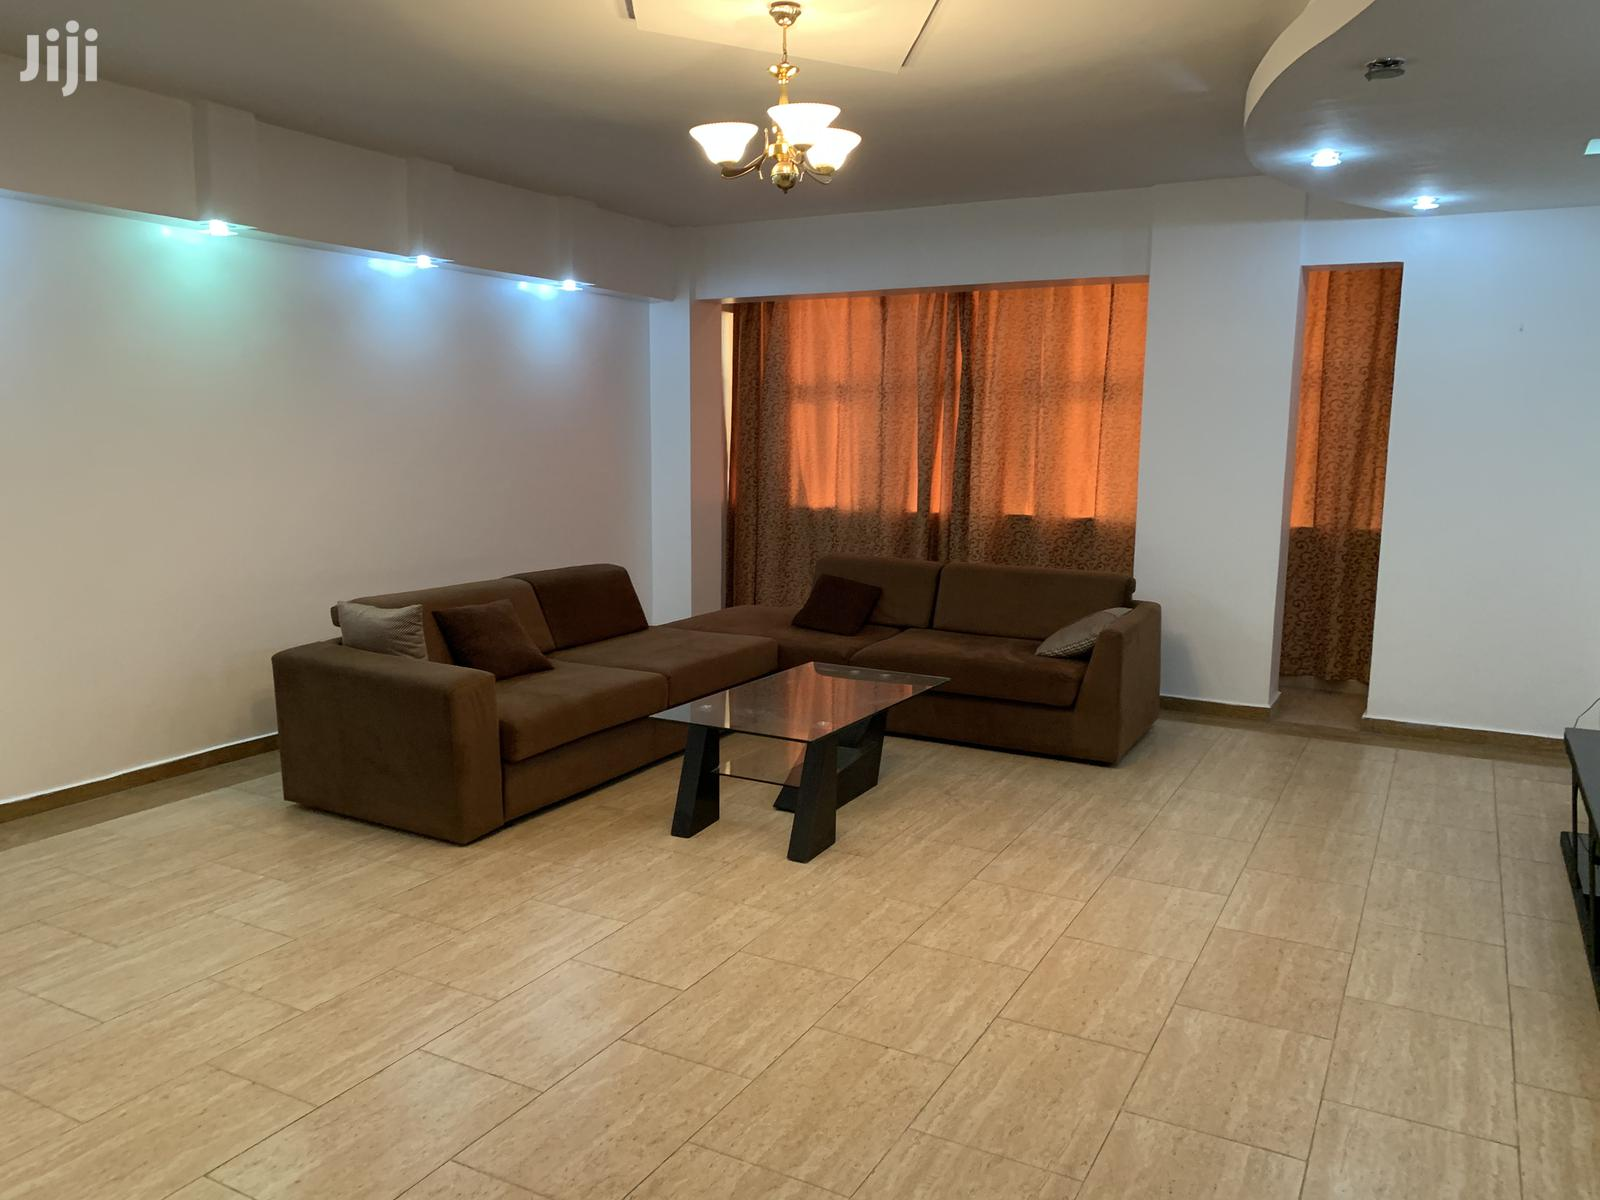 3 Bedroom Apartment In Upanga For Rent   Houses & Apartments For Rent for sale in Ilala, Dar es Salaam, Tanzania